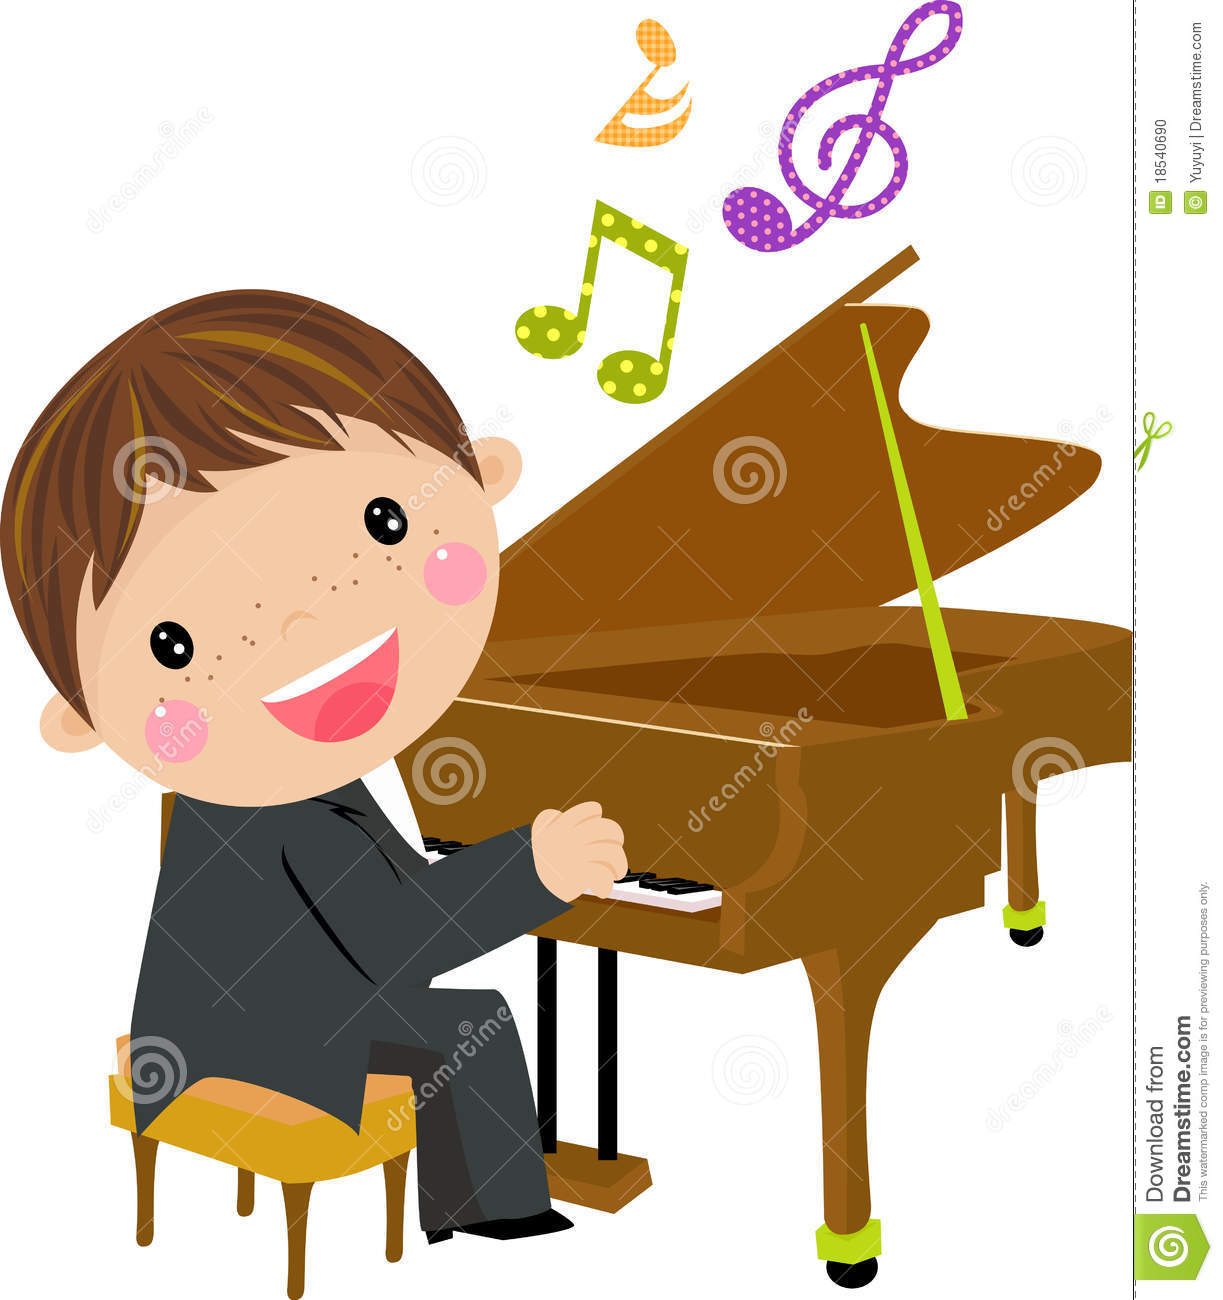 Piano Clipart Black and White.